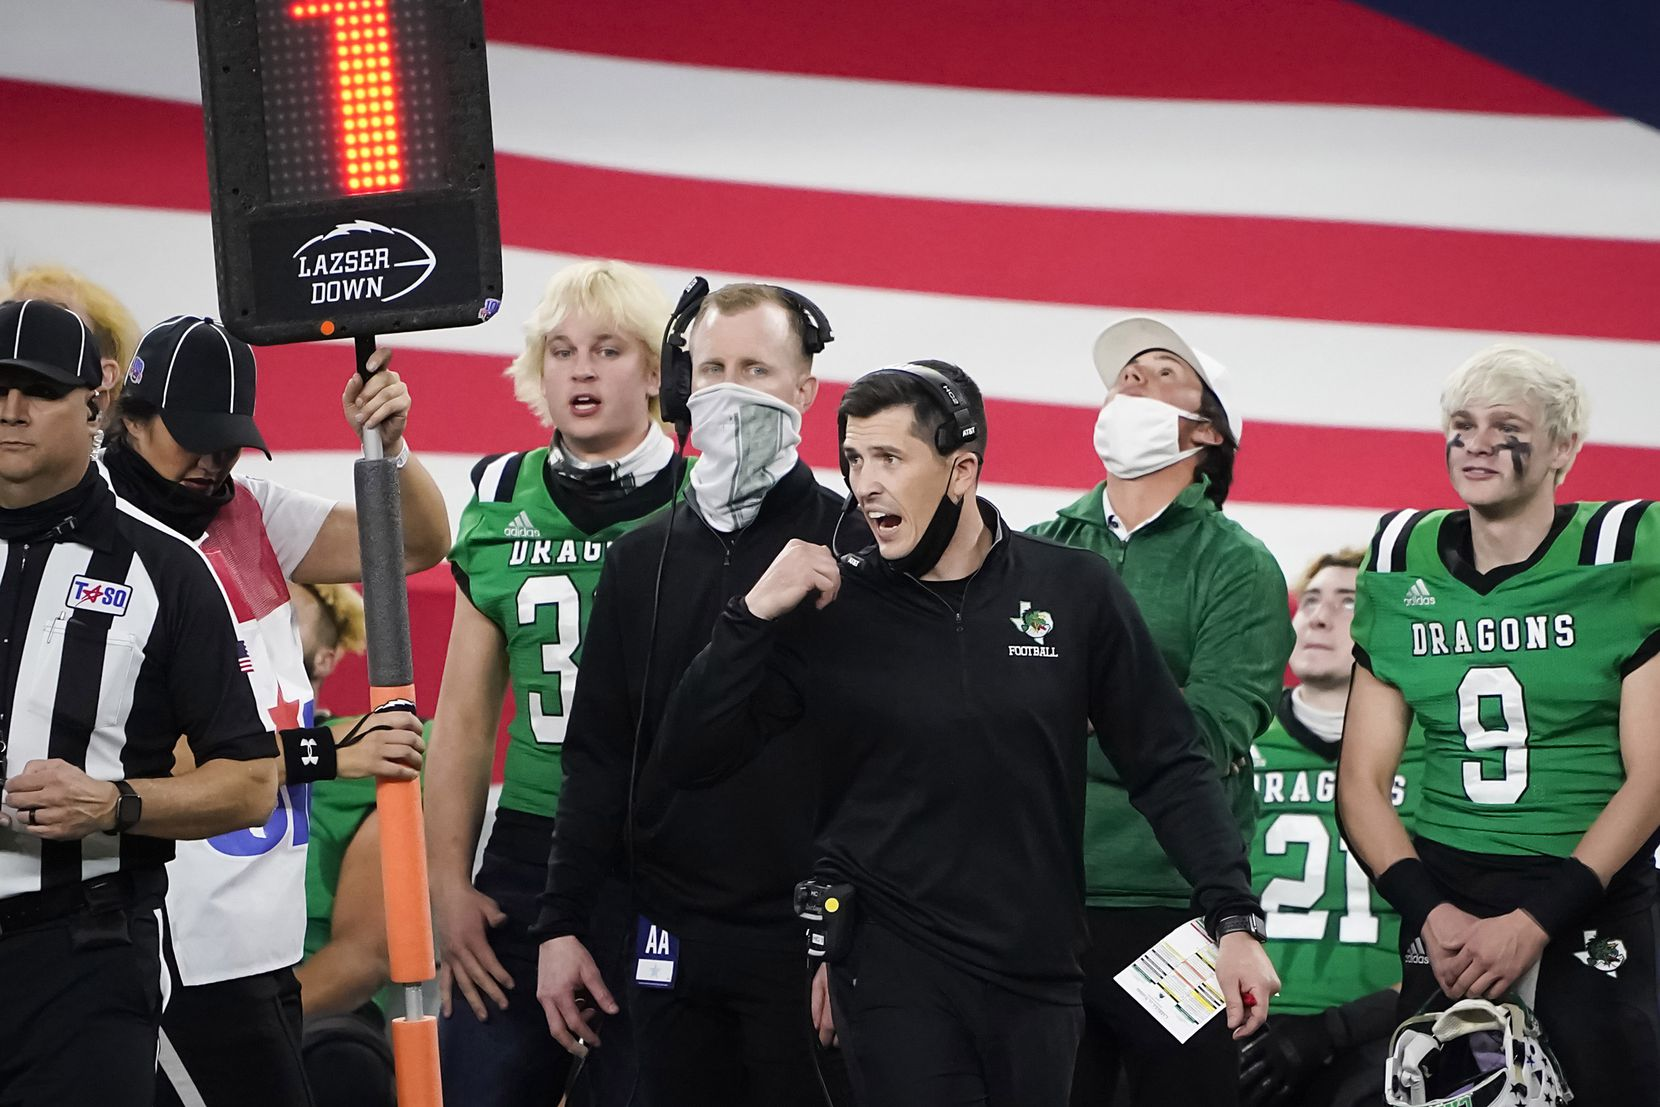 Southlake Carroll head coach Riley Dodge reacts to a play during the second quarter of the Class 6A Division I state football championship game against Austin Westlake at AT&T Stadium on Saturday, Jan. 16, 2021, in Arlington, Texas.